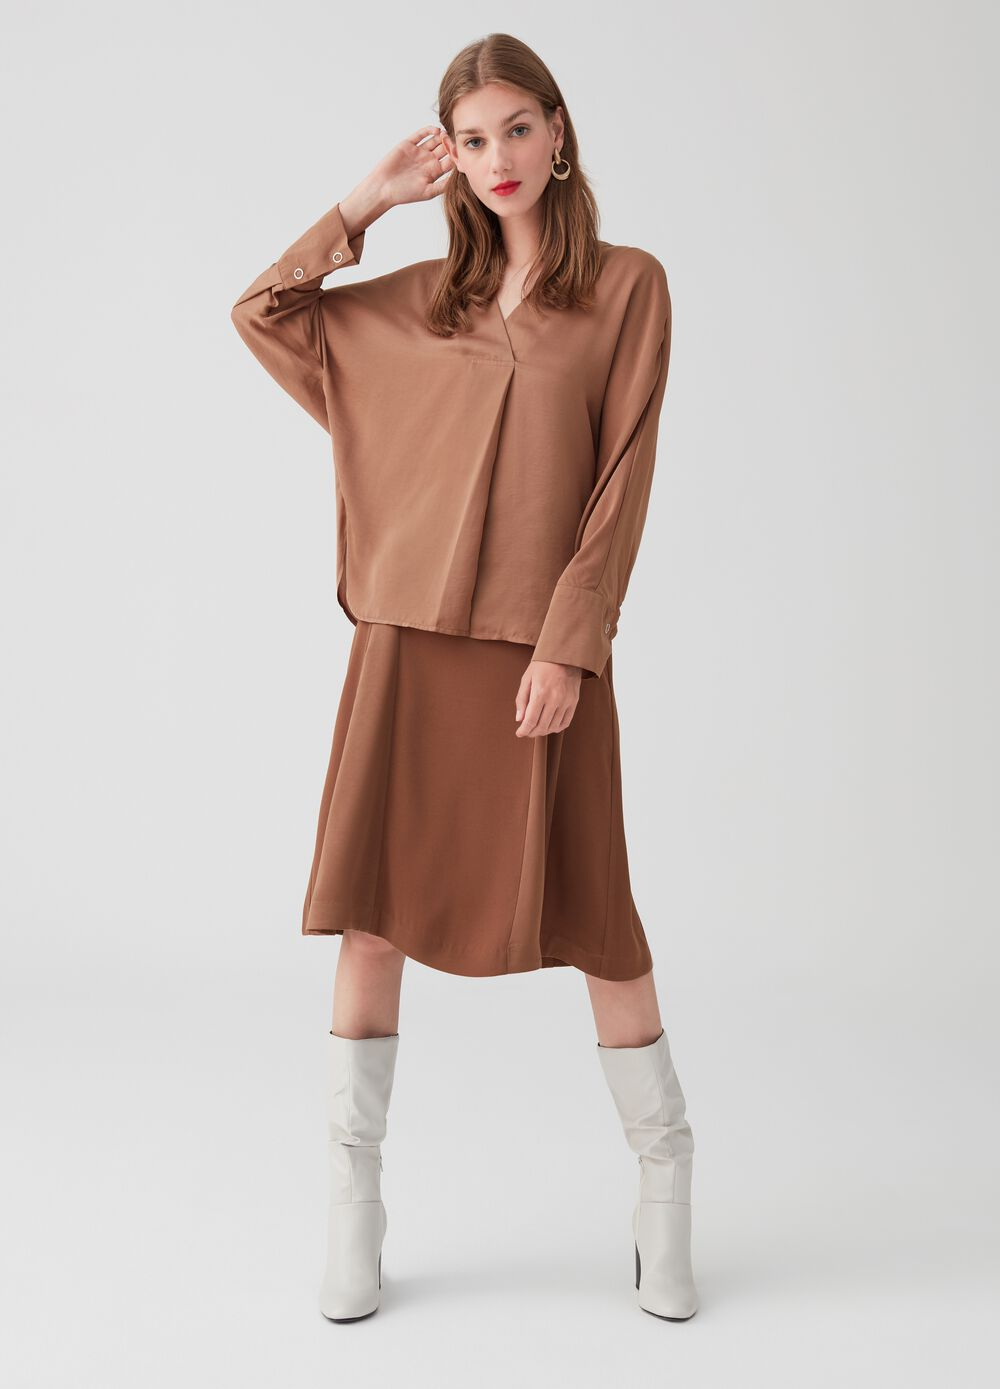 Satin-effect blouse with V neck